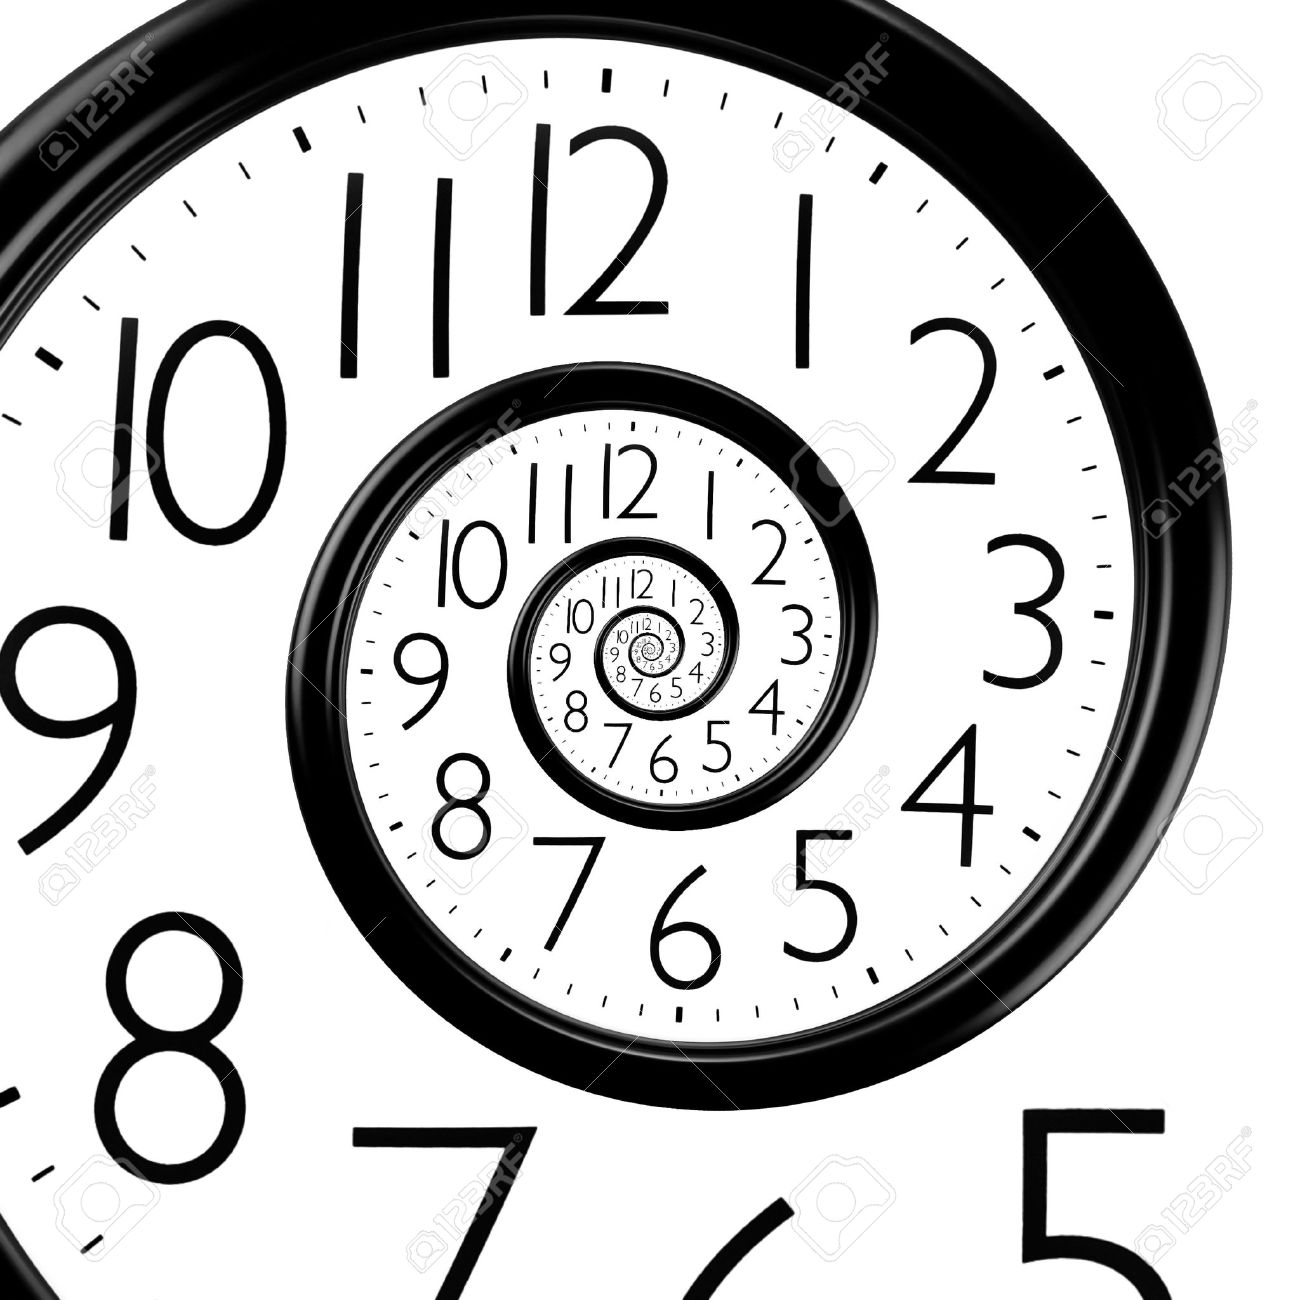 infinity time spiral clock, abstract background - 34785245